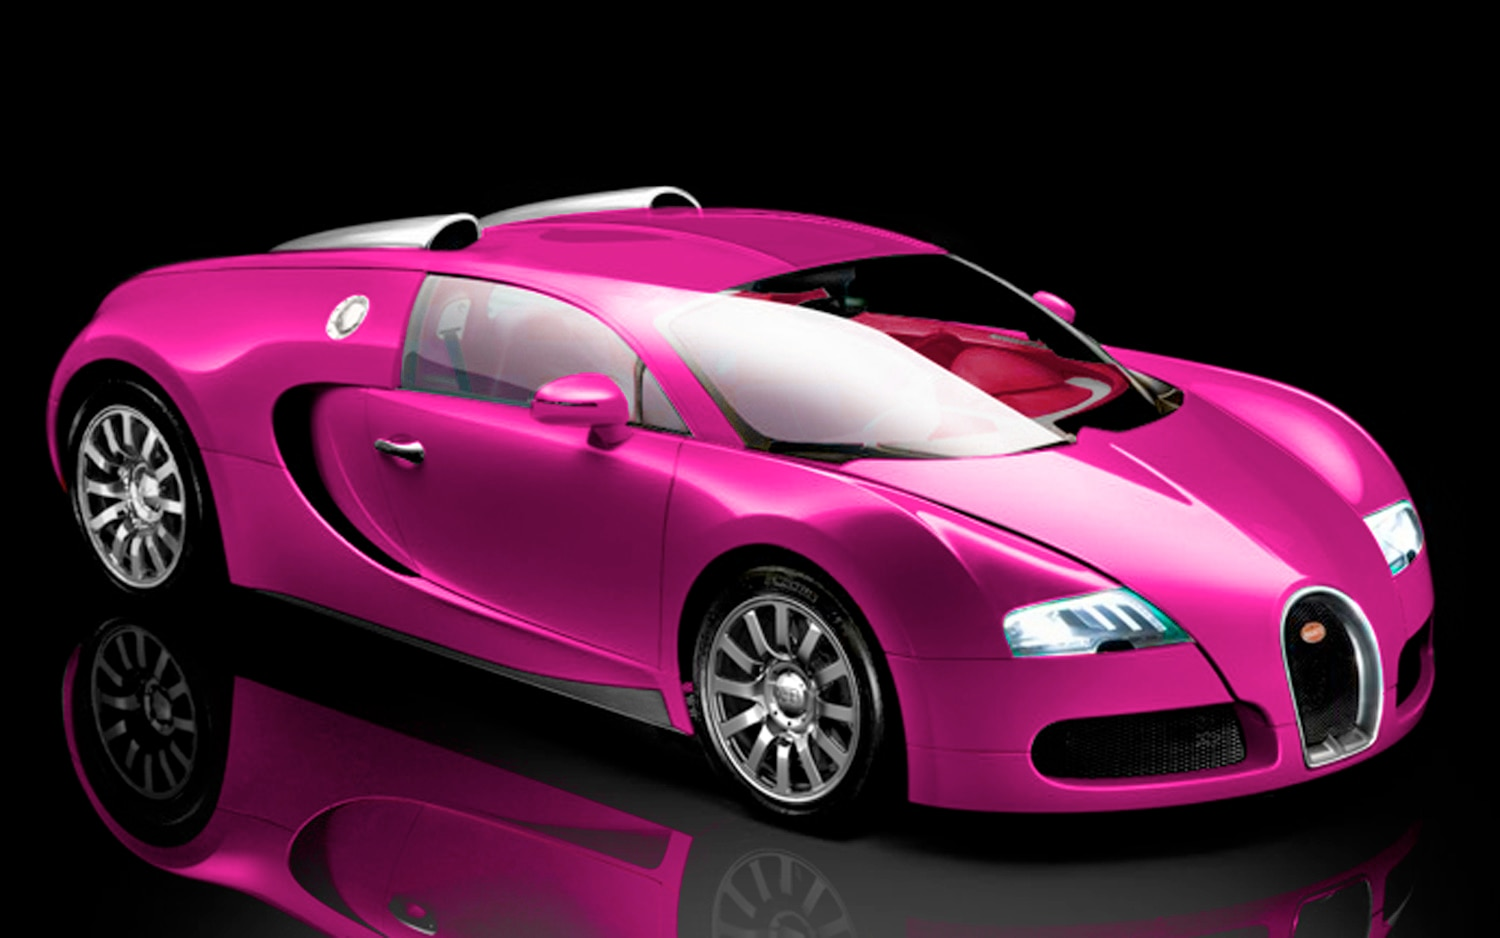 fashion hurts british tv star katie price to paint her bugatti veyron pink. Black Bedroom Furniture Sets. Home Design Ideas